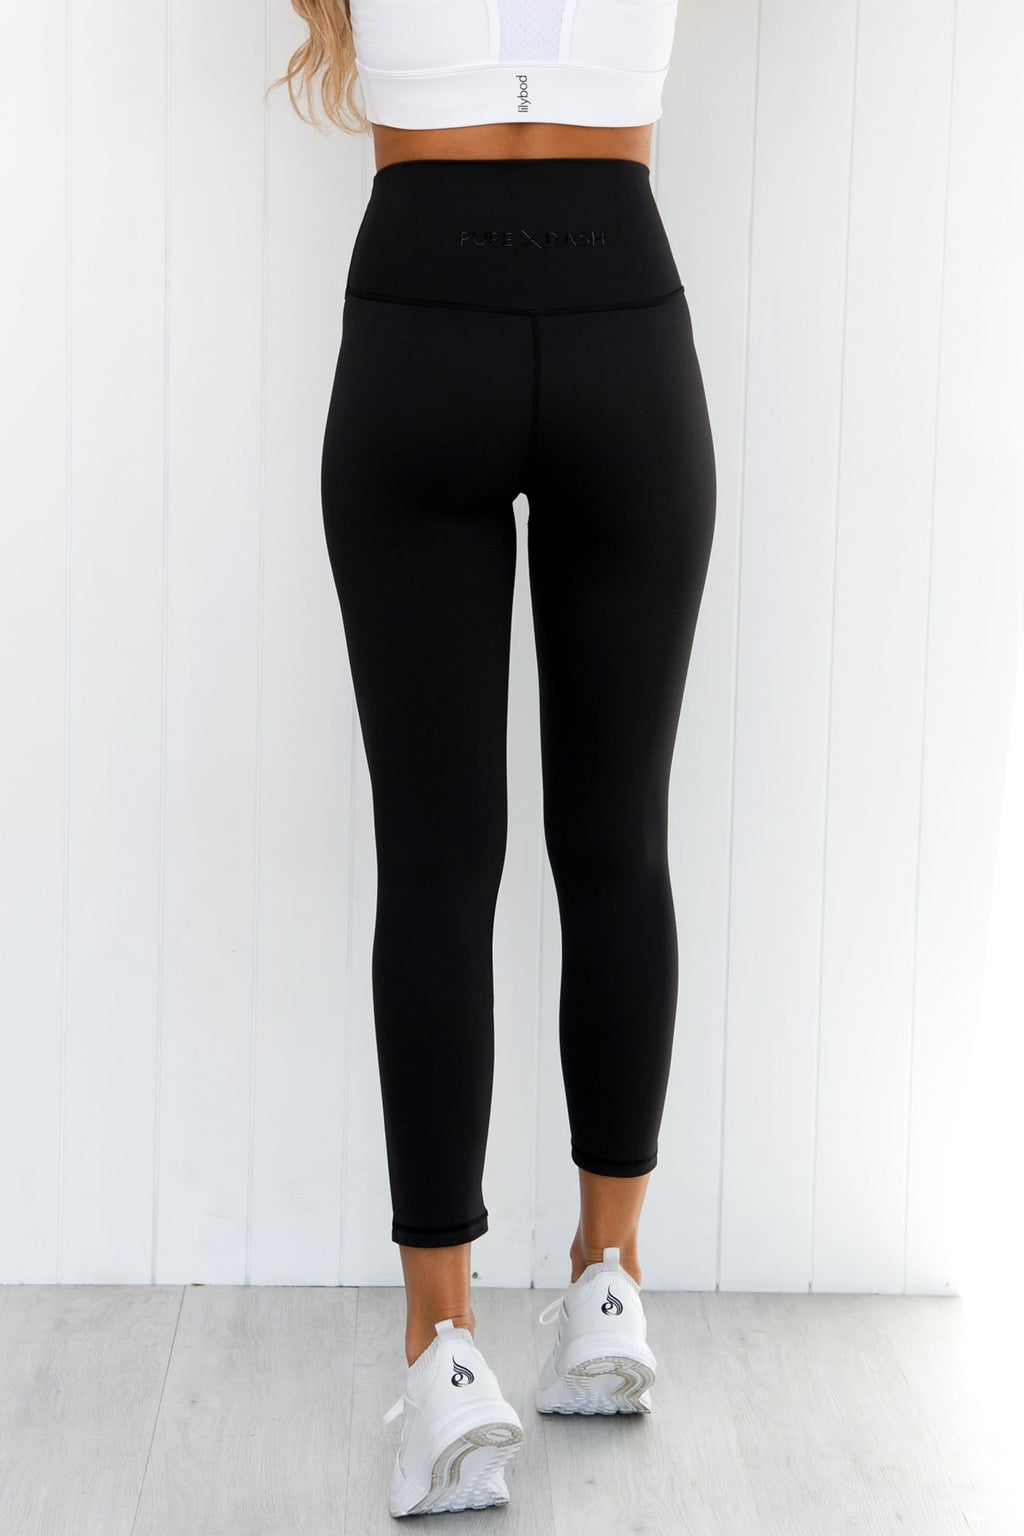 Panther High Rise 7/8 Leggings - PURE DASH